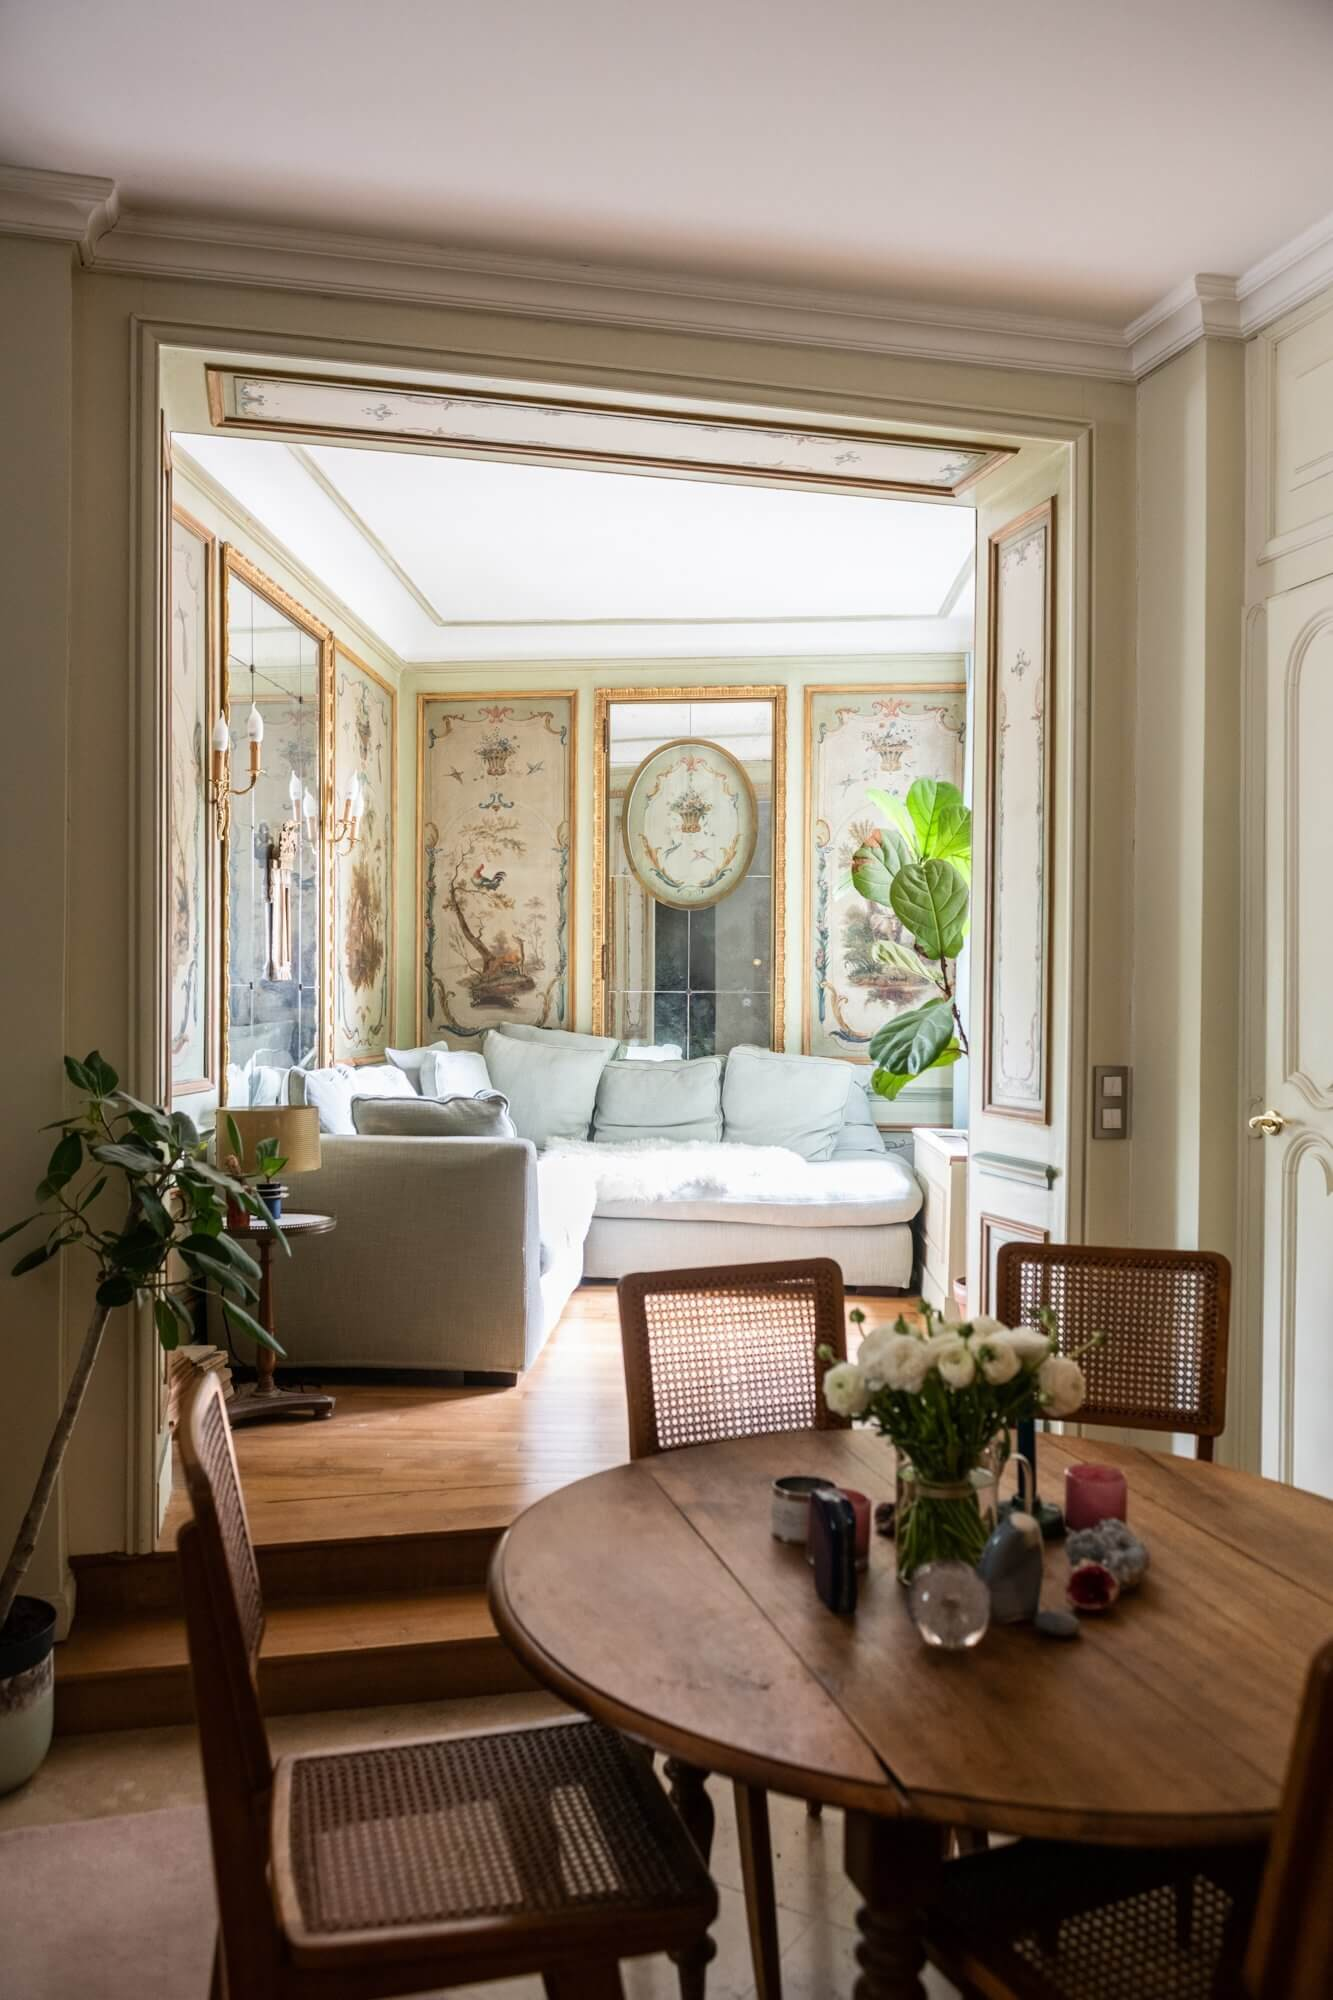 Historic Details in a Breathtaking Montmartre Home